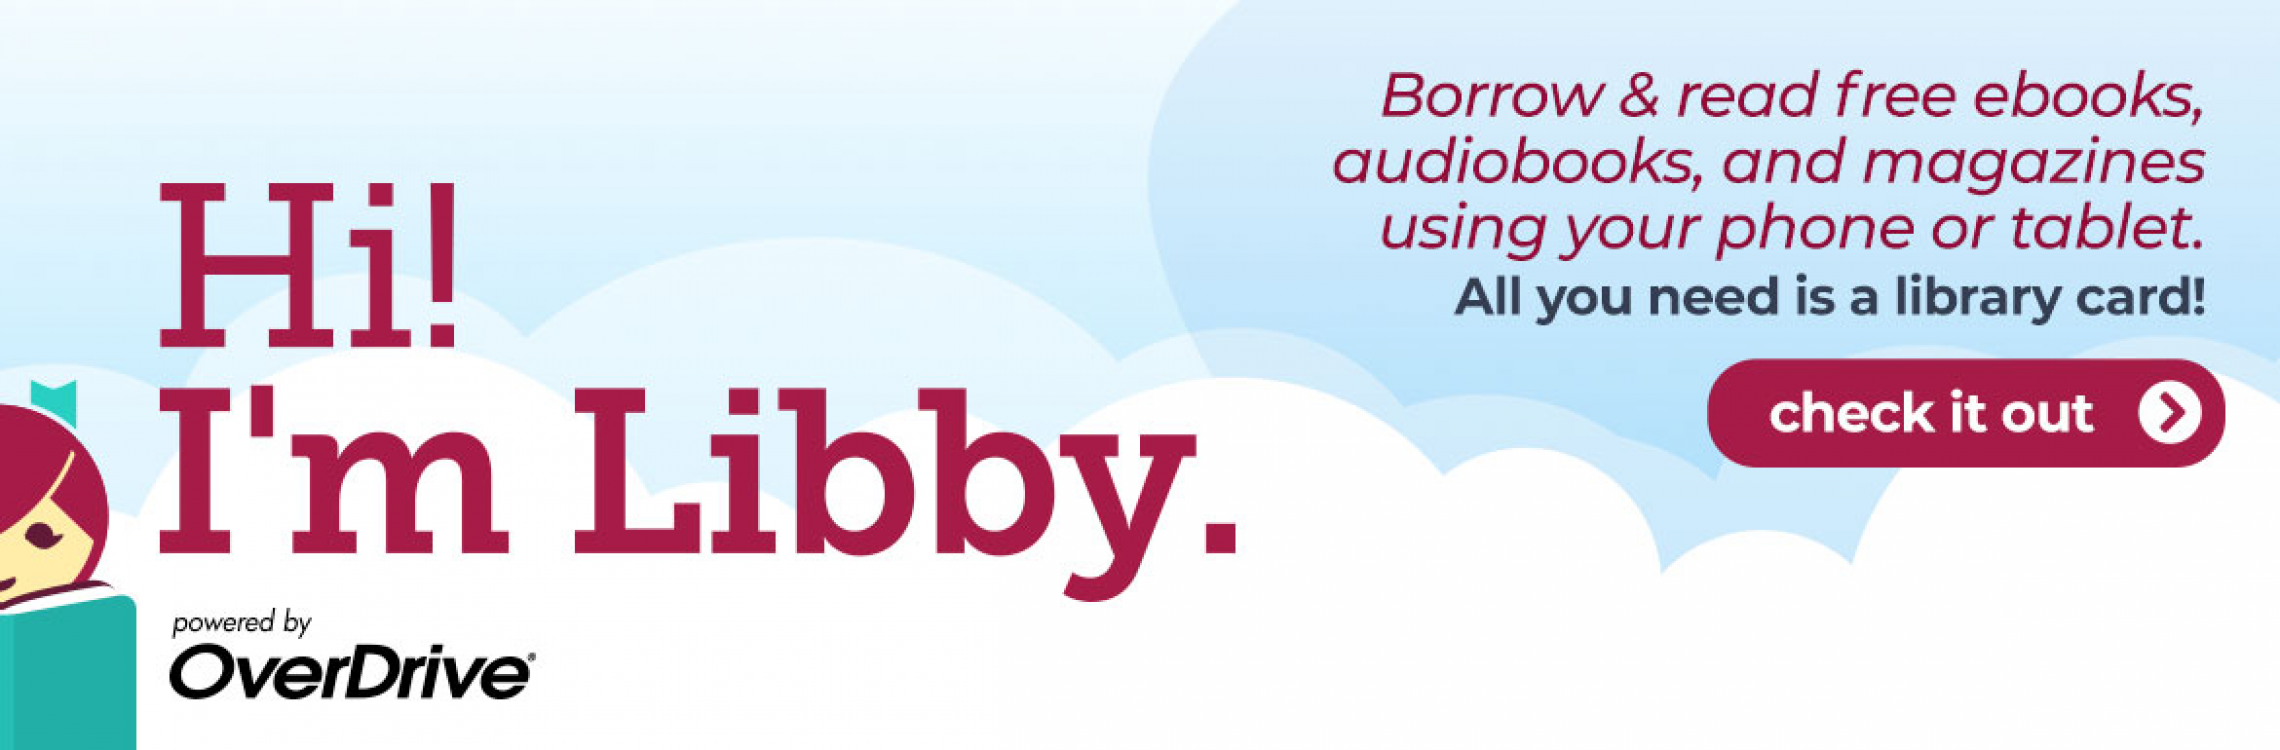 "Libby graphic slide with text: ""Hi! i'm Libby. Powered by OverDrive. Borrow and read free ebooks, audiobooks, and magazines using your phone or tablet. All you need is a library card! Check it out."